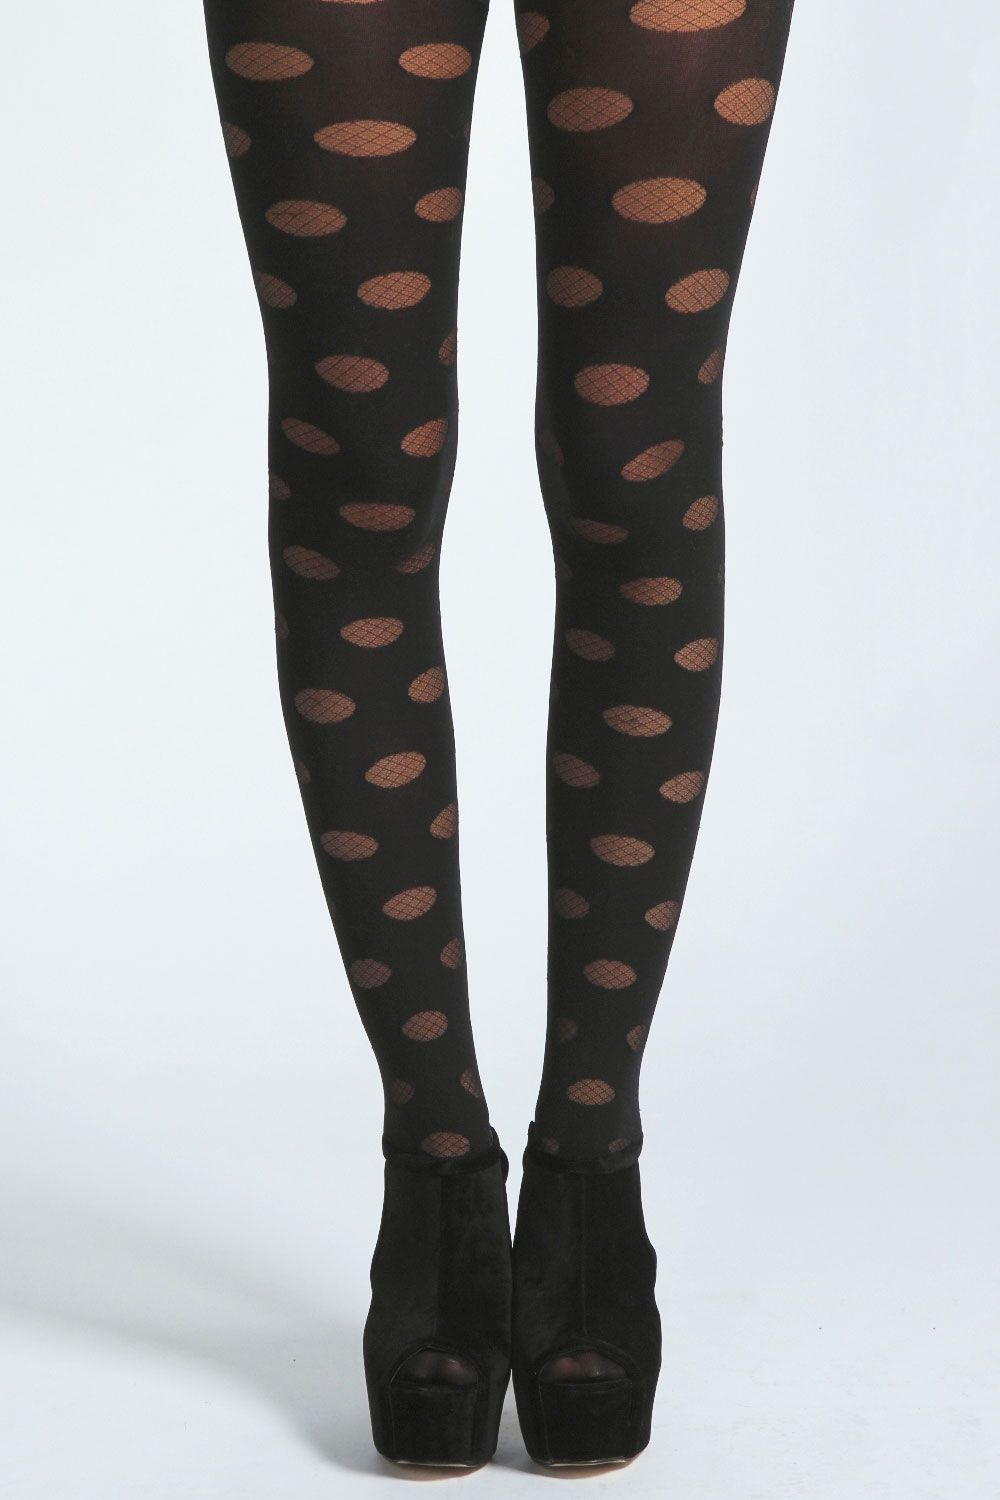 Georgia Reverse Spot Tights >> http://www.boohoo.com/restofworld/gifts/gifts-for-her/icat/new-in-accessories/georgia-reverse-spot-tights/invt/azz38089